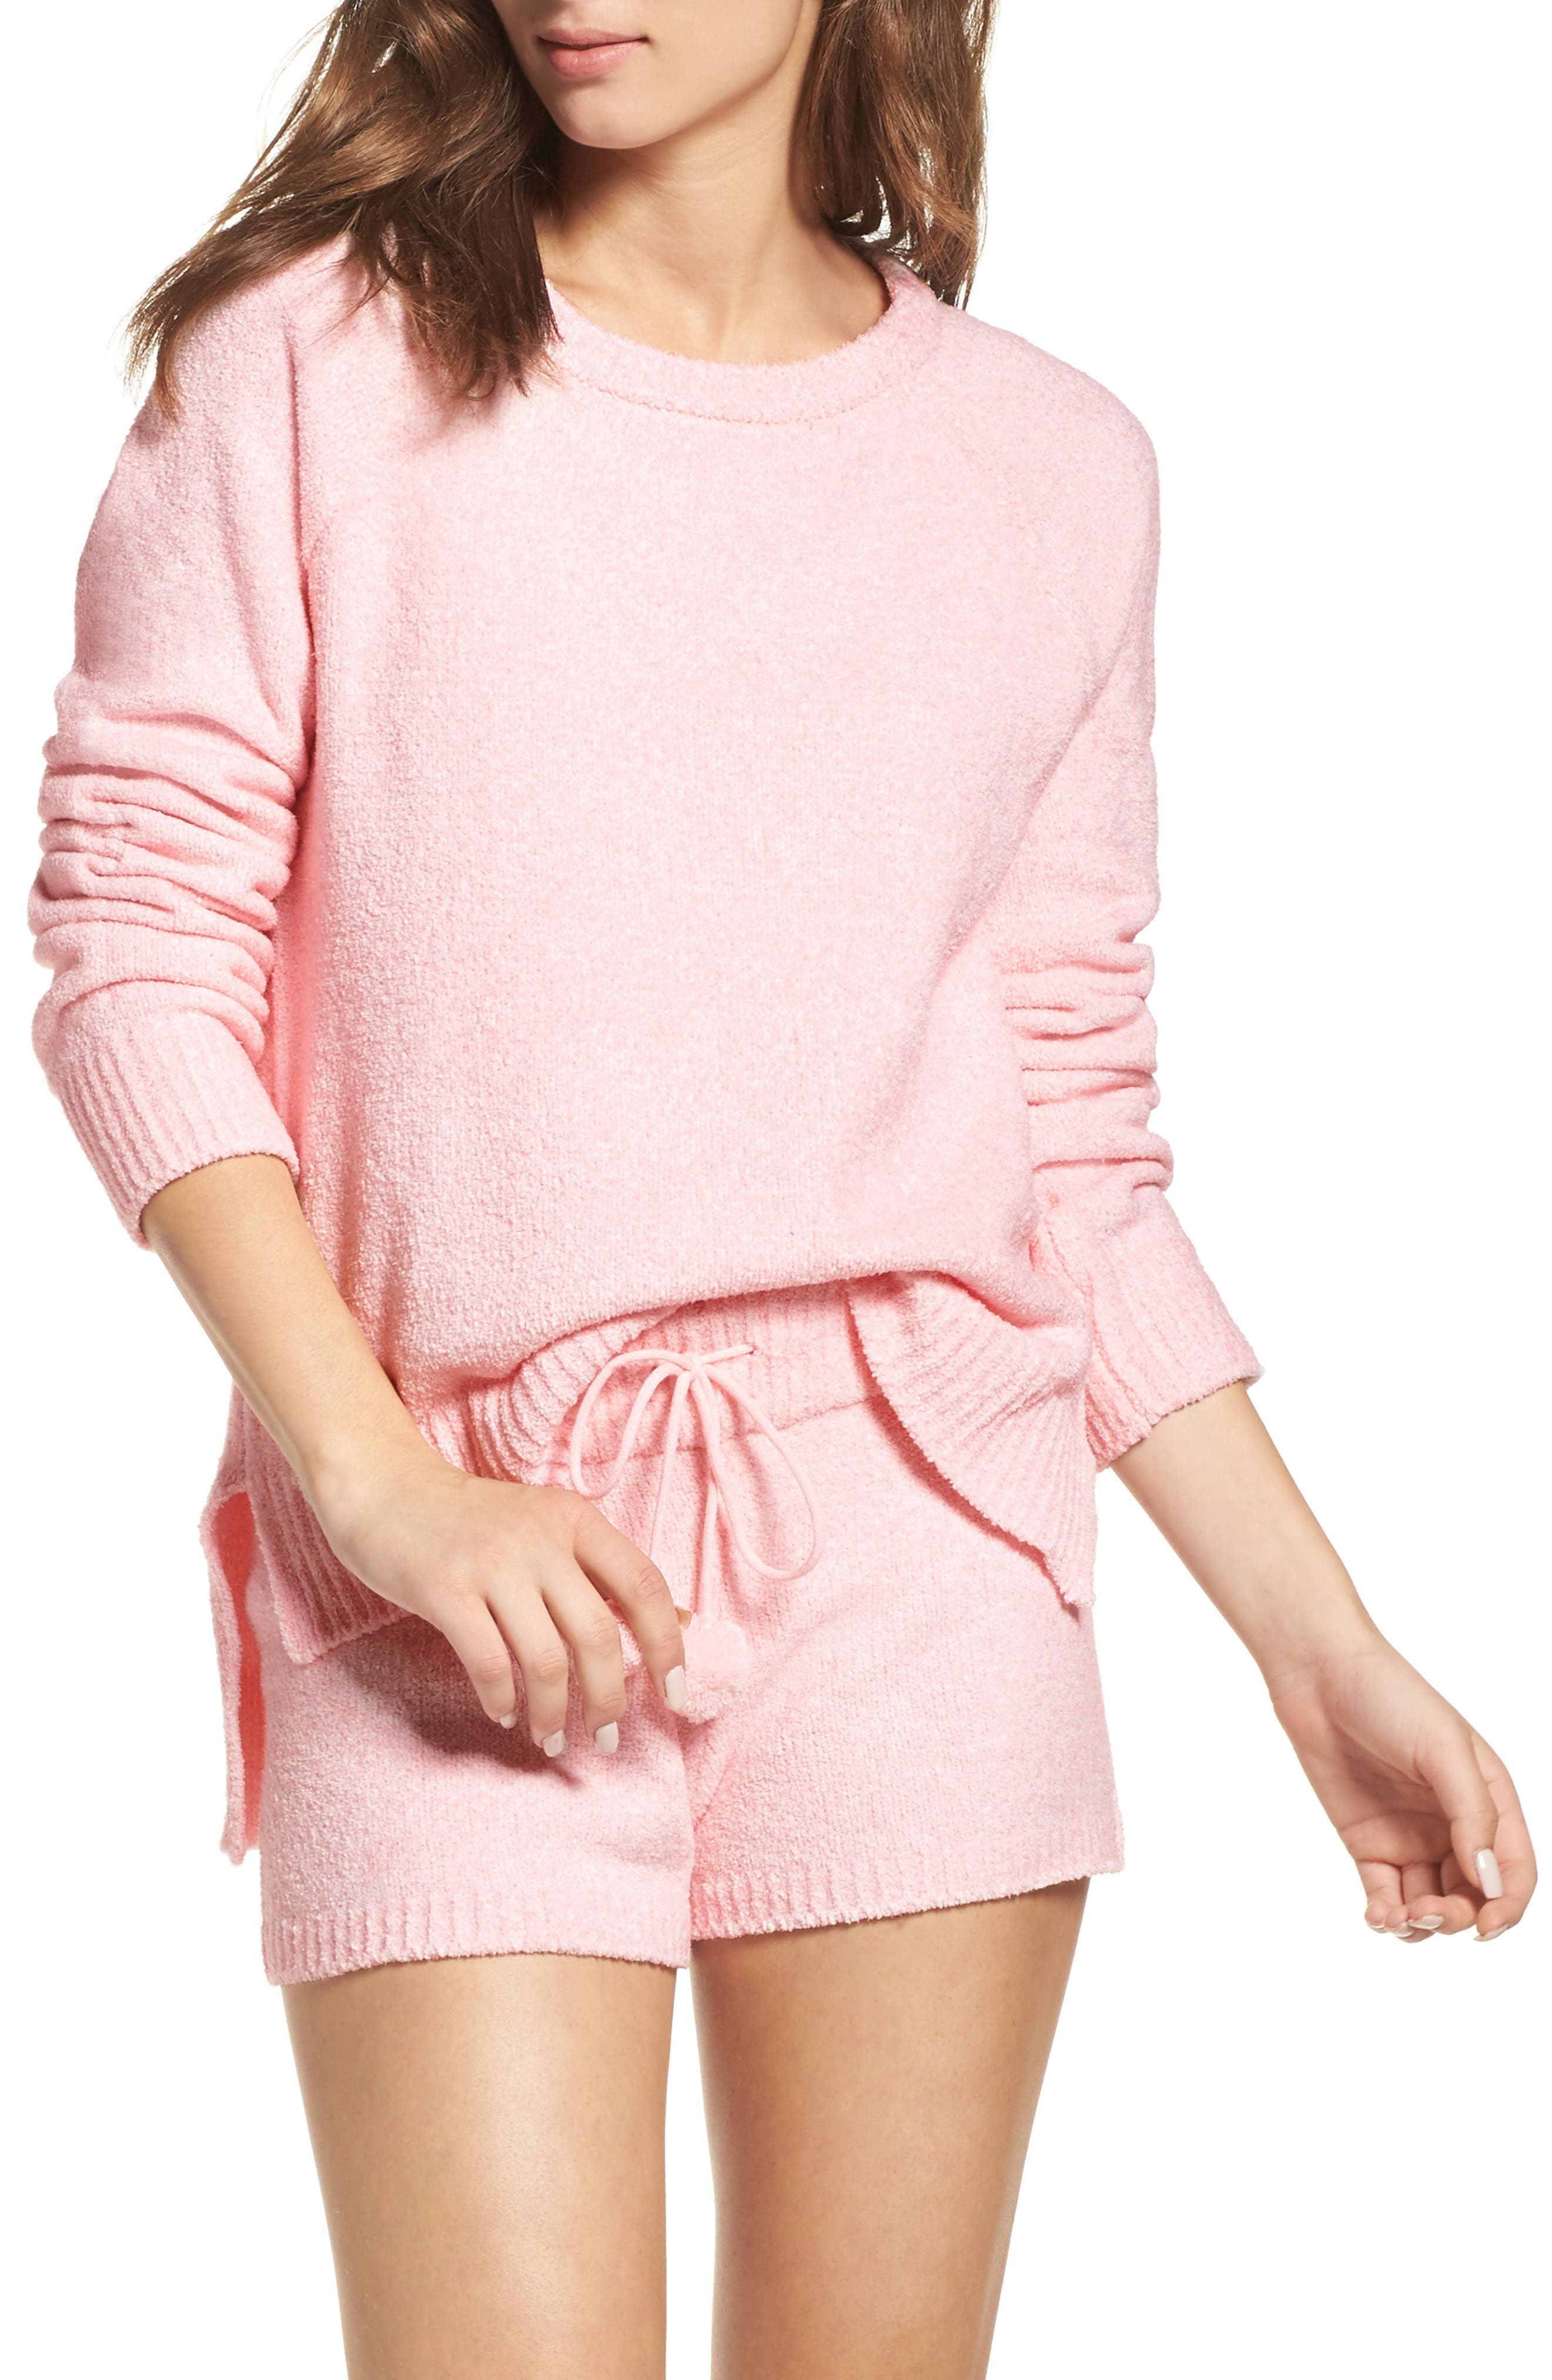 Honeydew Intimates Marshmallow Sweatshirt